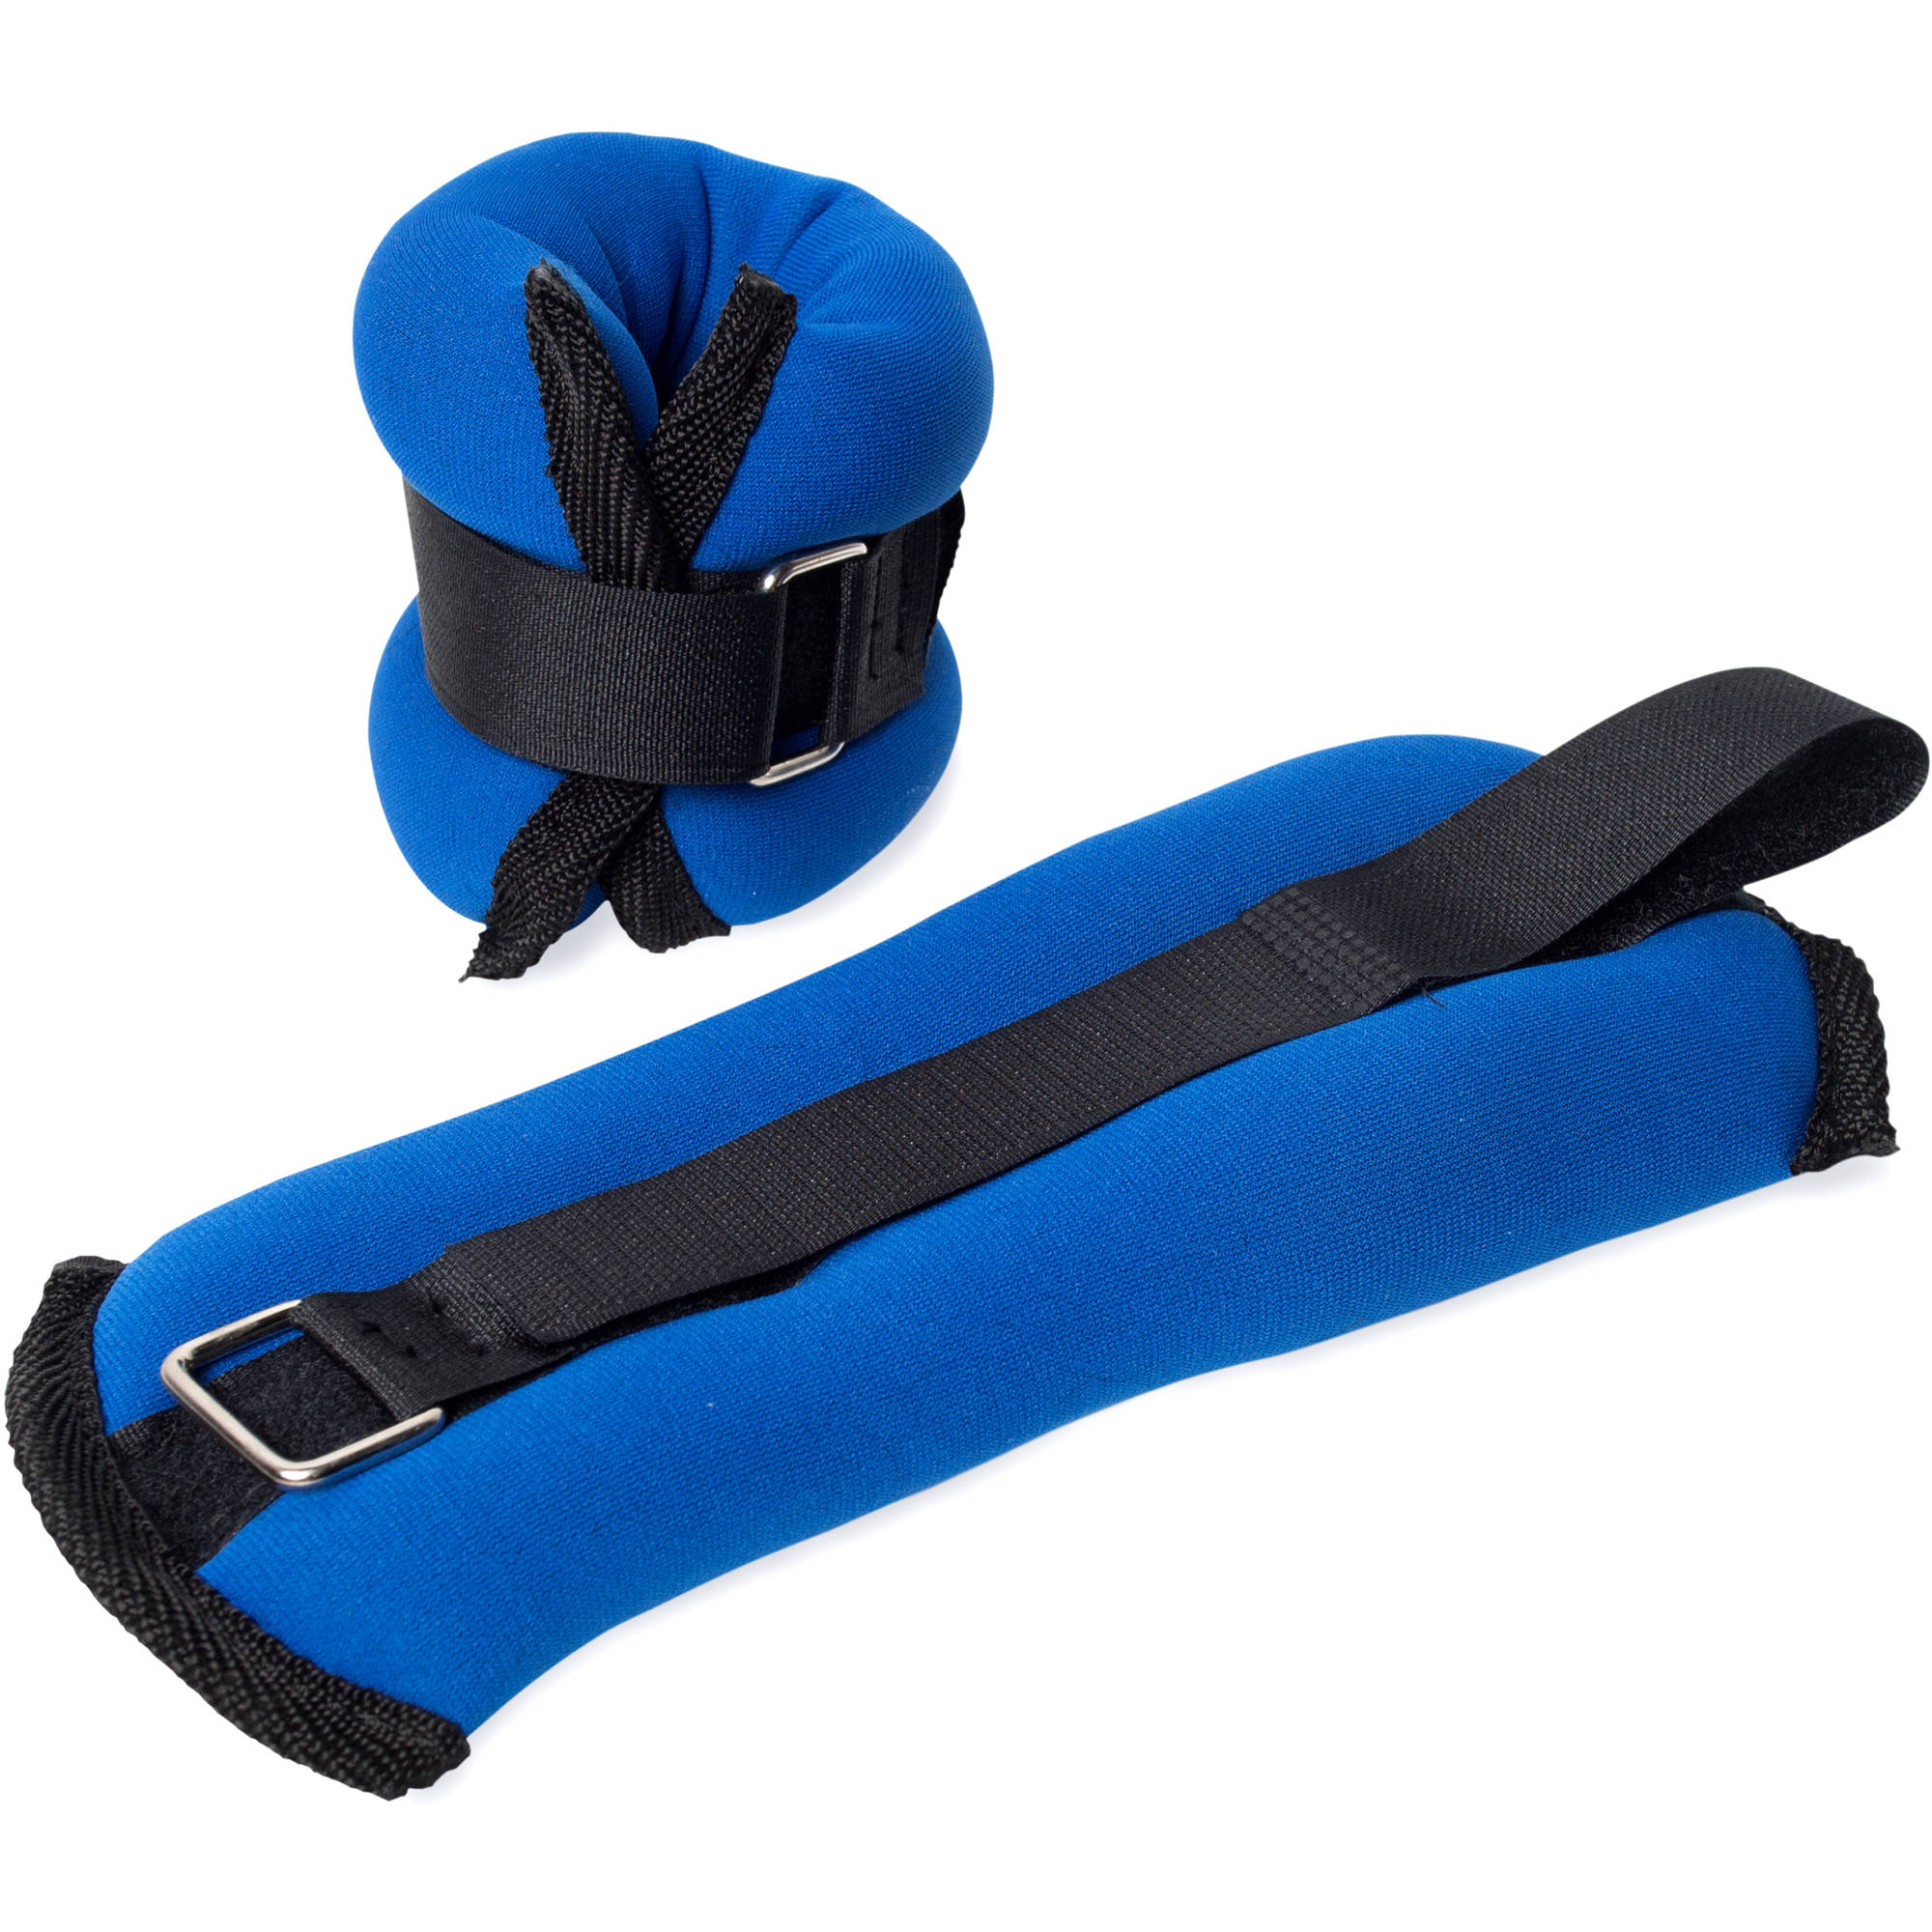 CAP Fitness 5 lb Pair of Ankle Weights